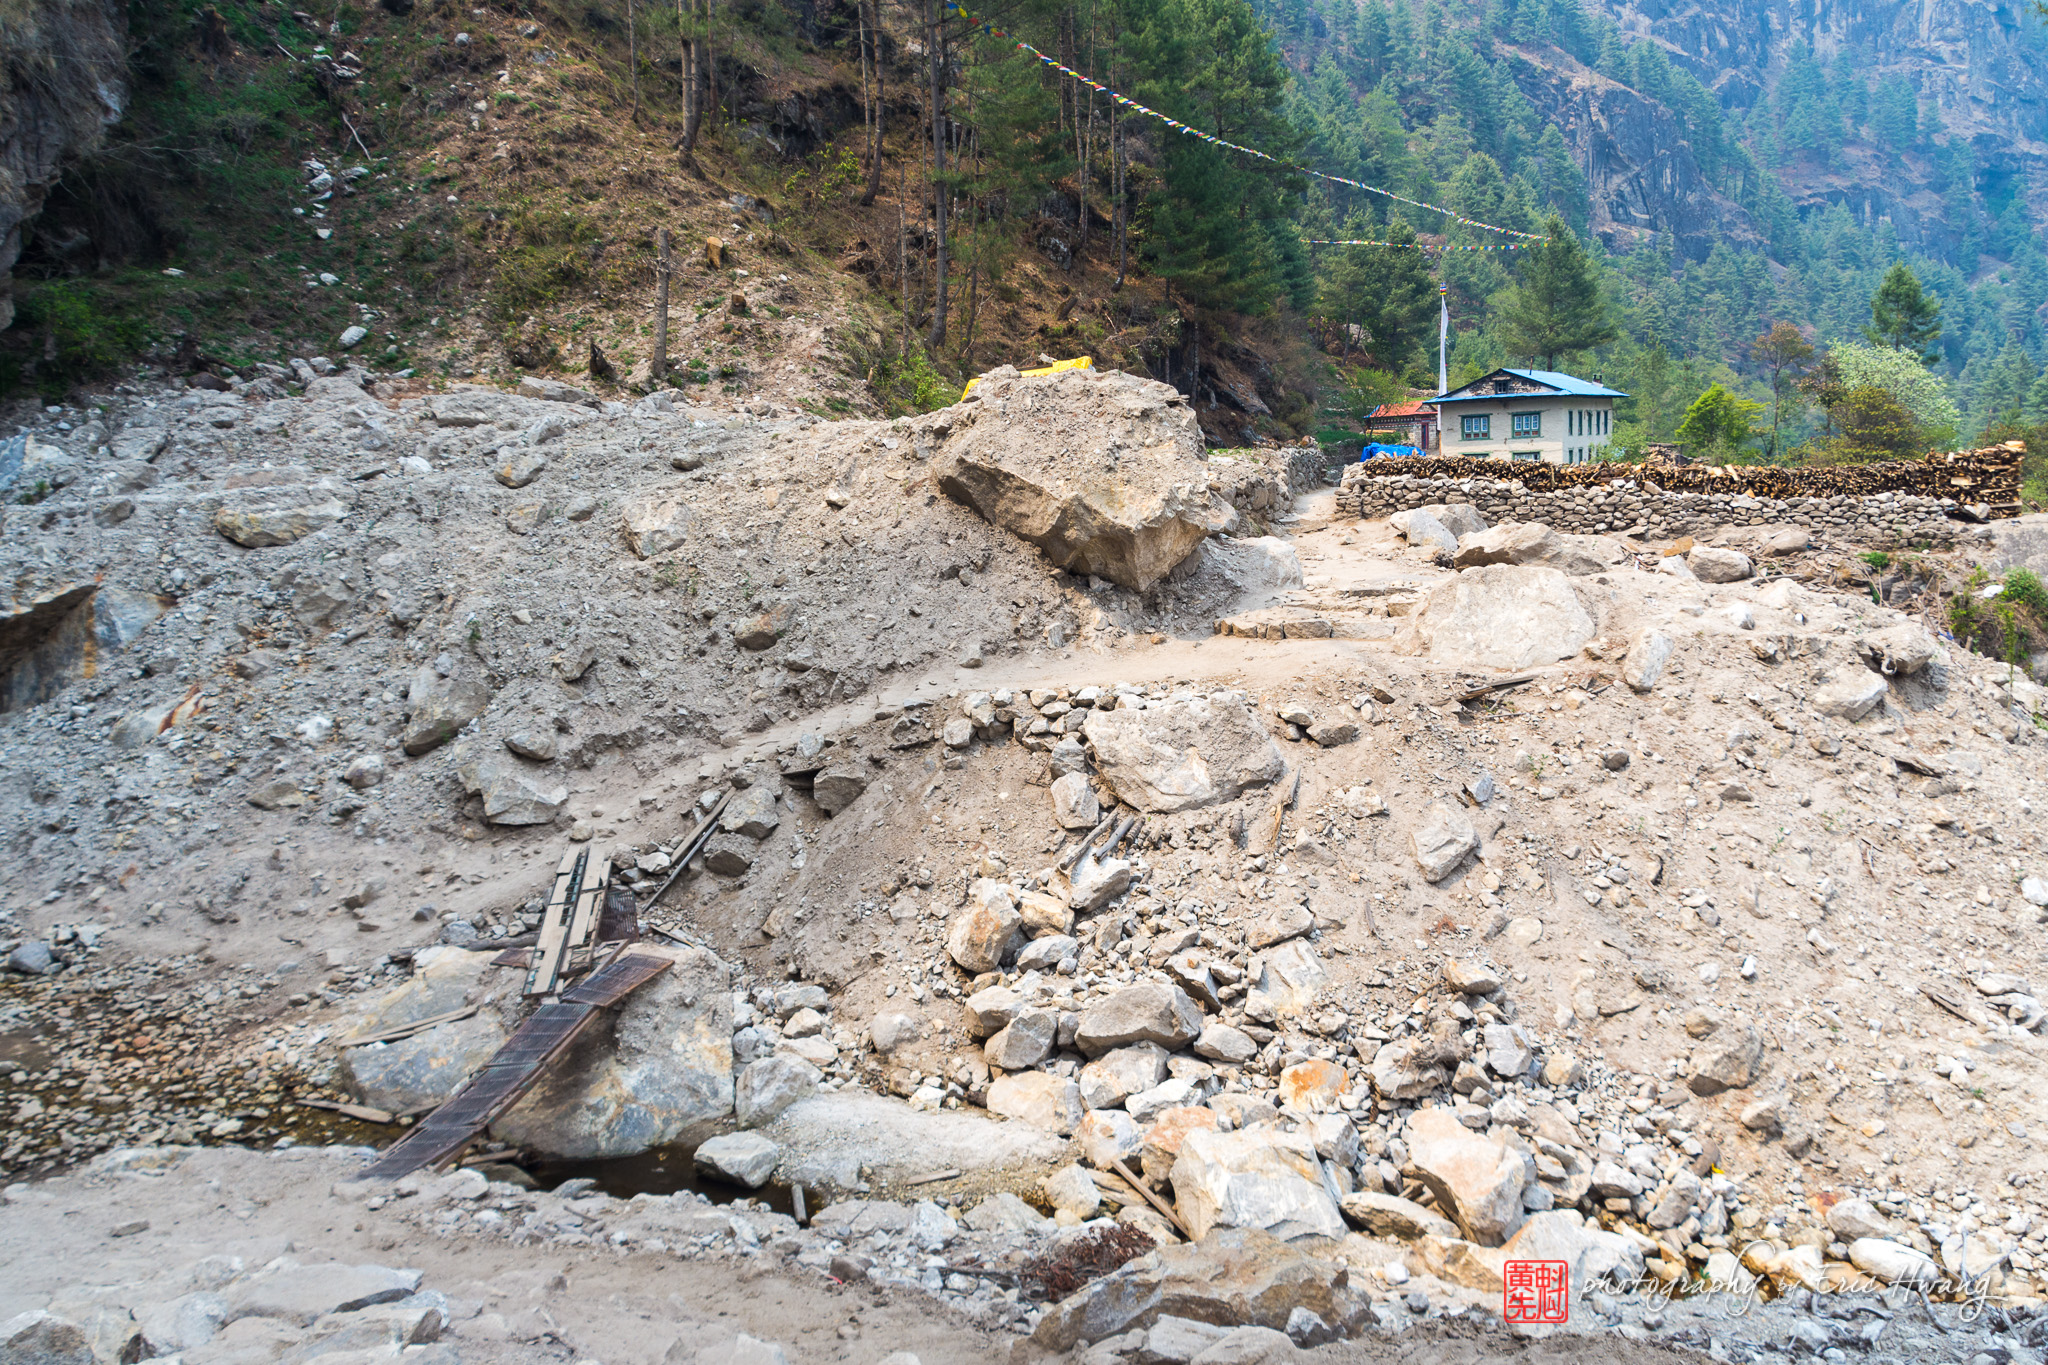 Landslides have changed the trekking routes